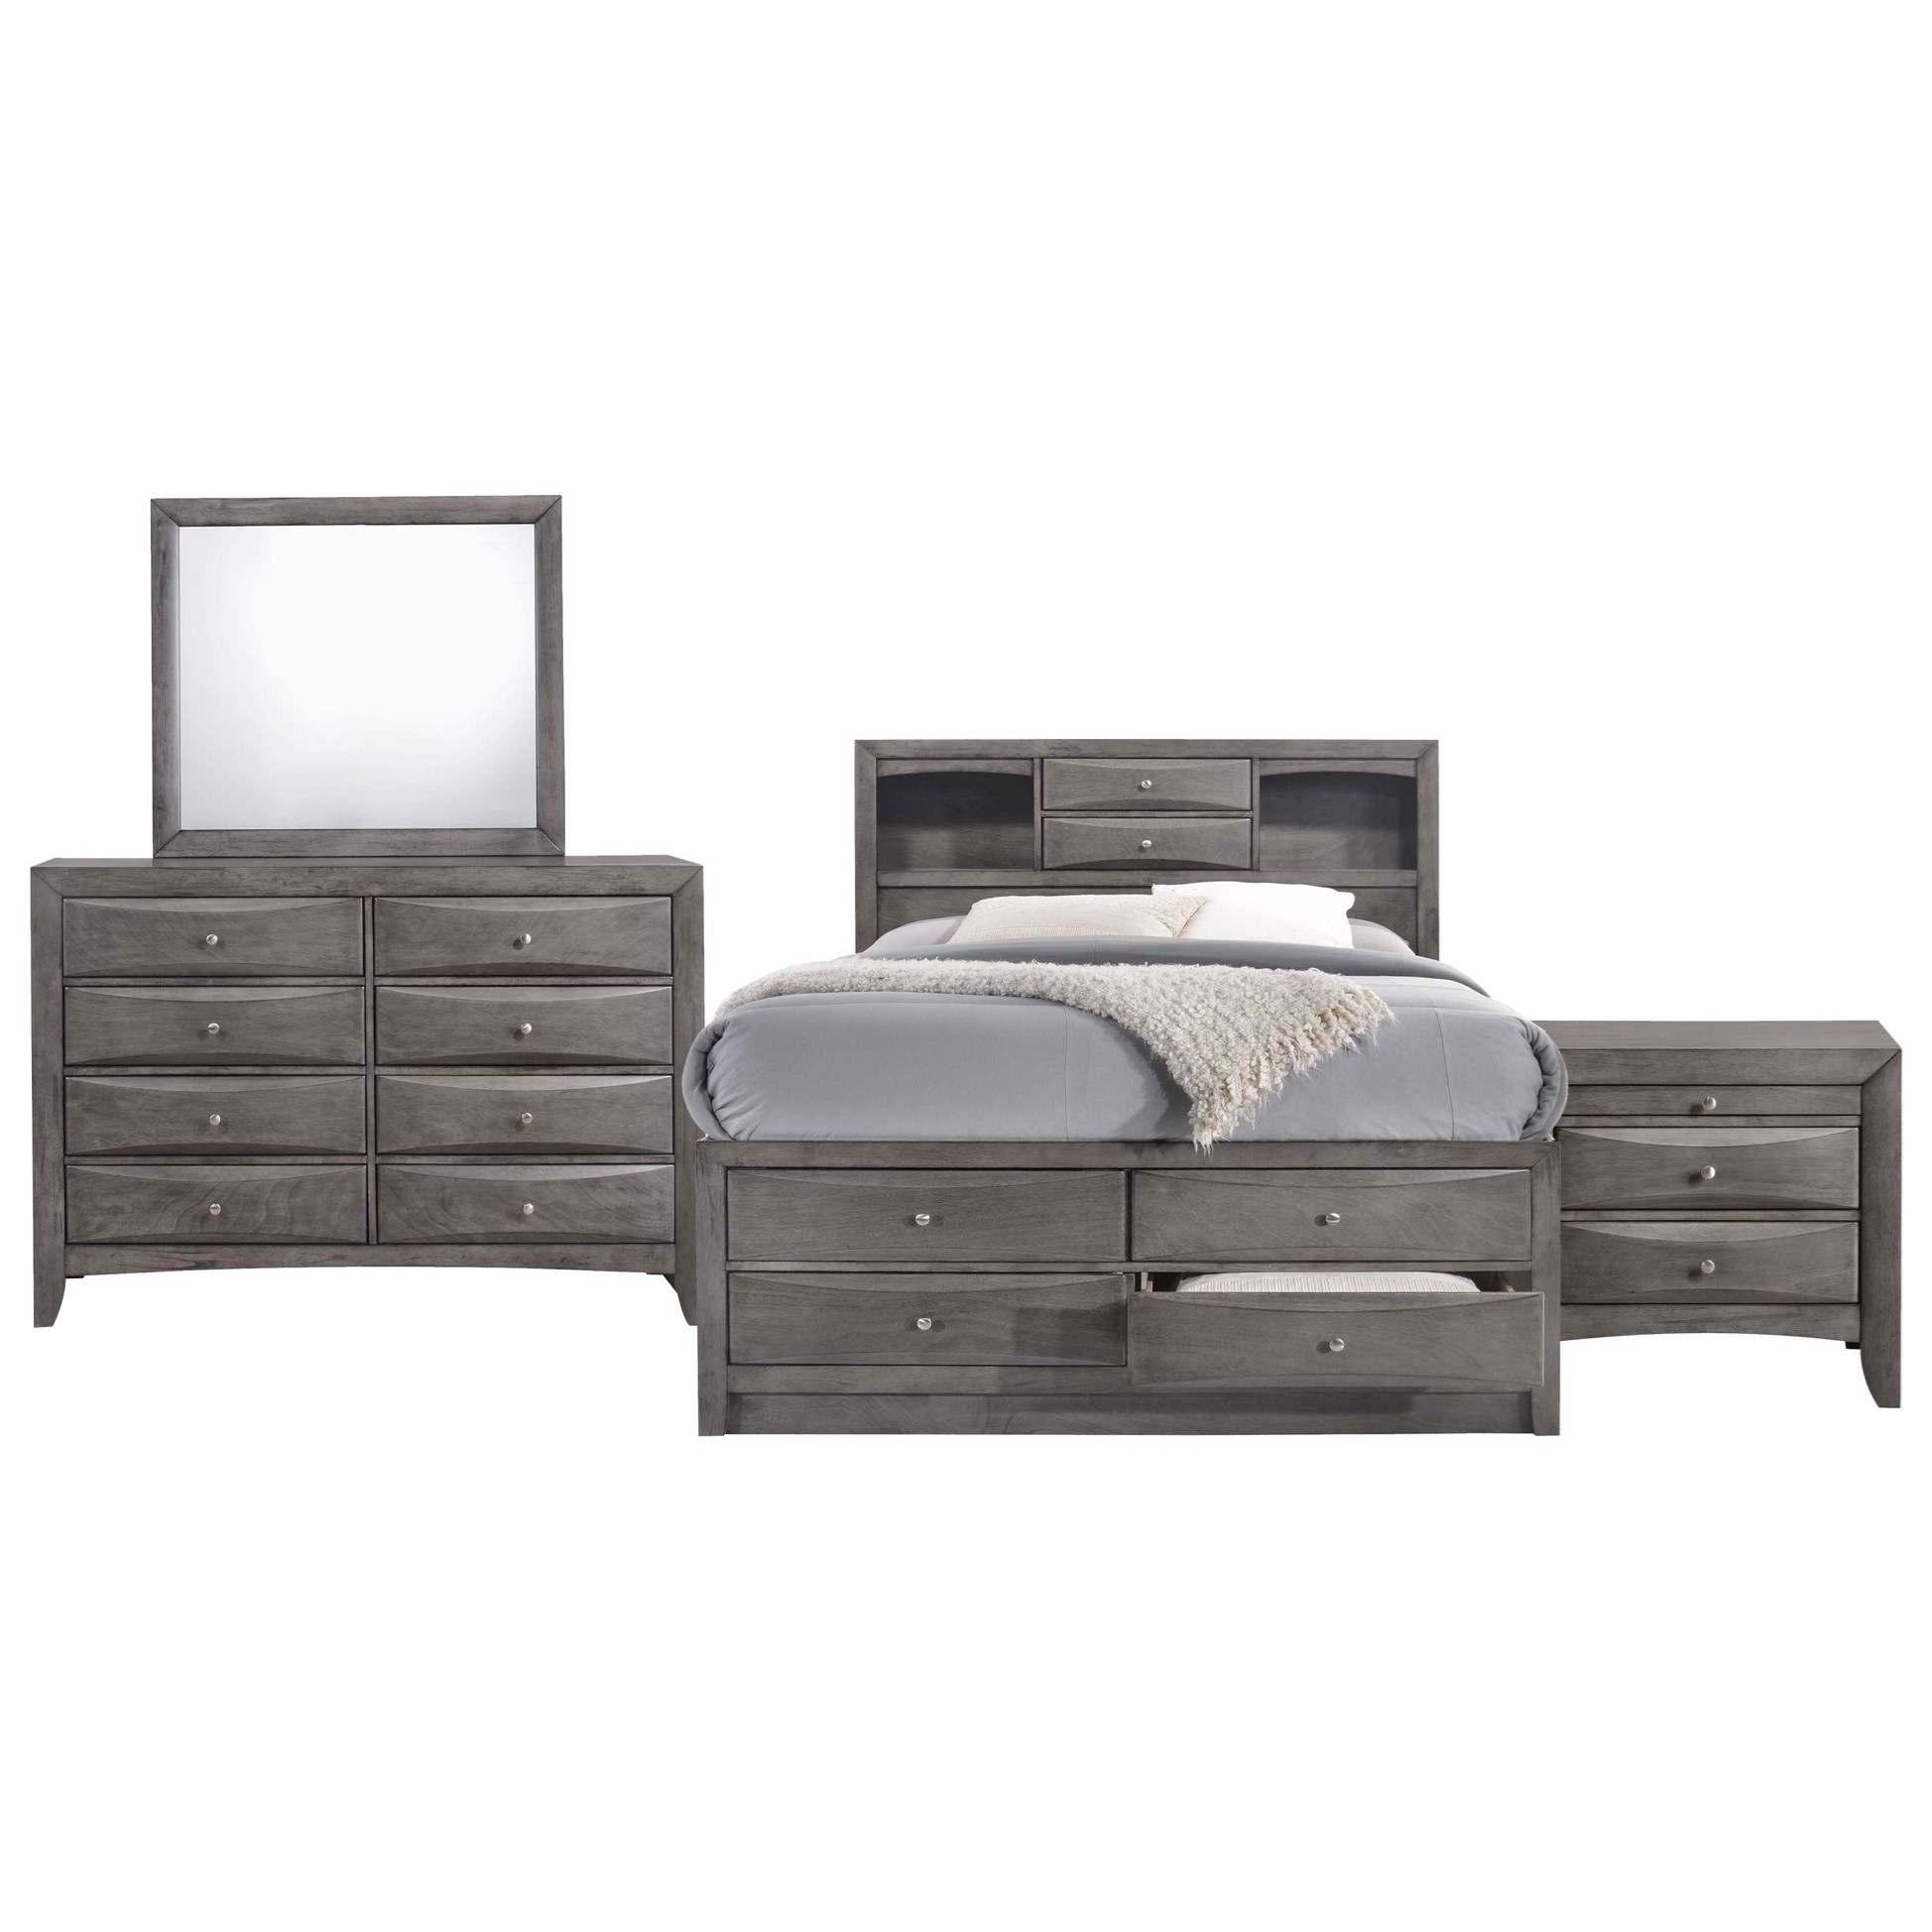 Emily Queen Bedroom Group by Elements International at Beck's Furniture